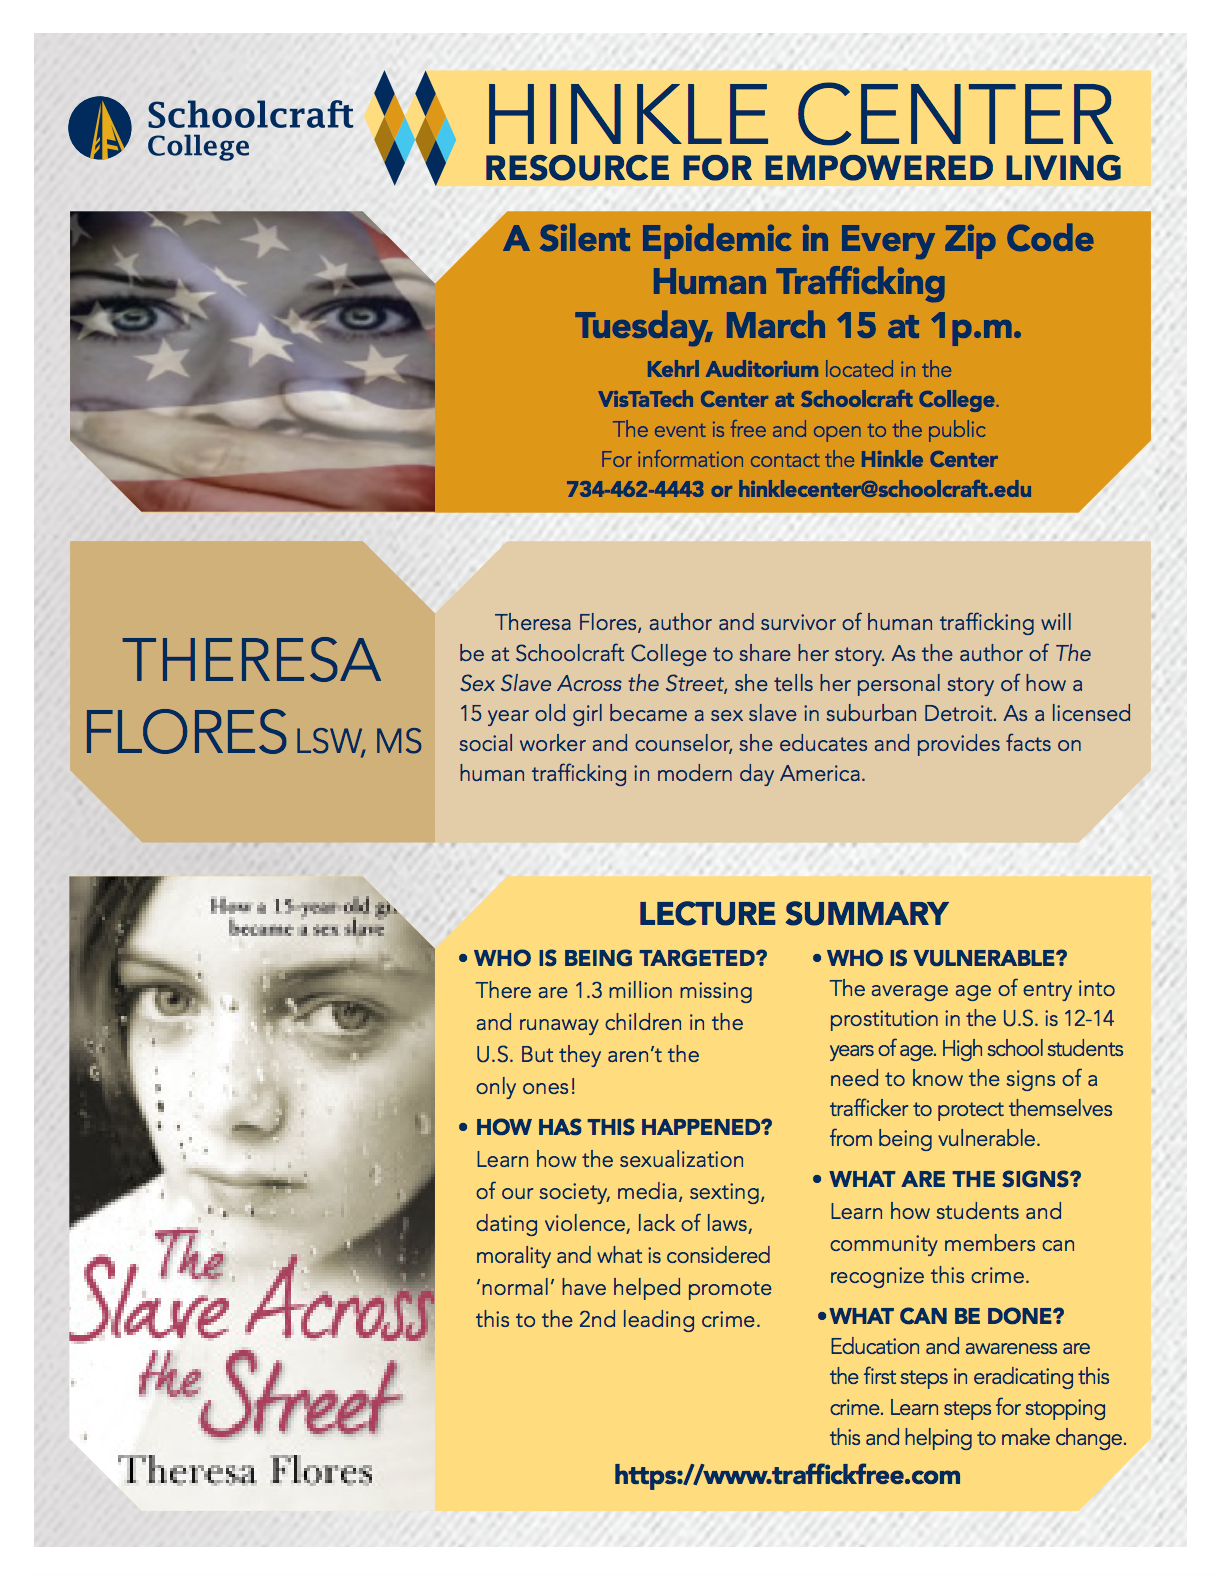 Tuesday, 3/15 at 1 p.m. in the Kehrl Auditorium, Schoolcraft College will host a presentation by Theresa Flores.